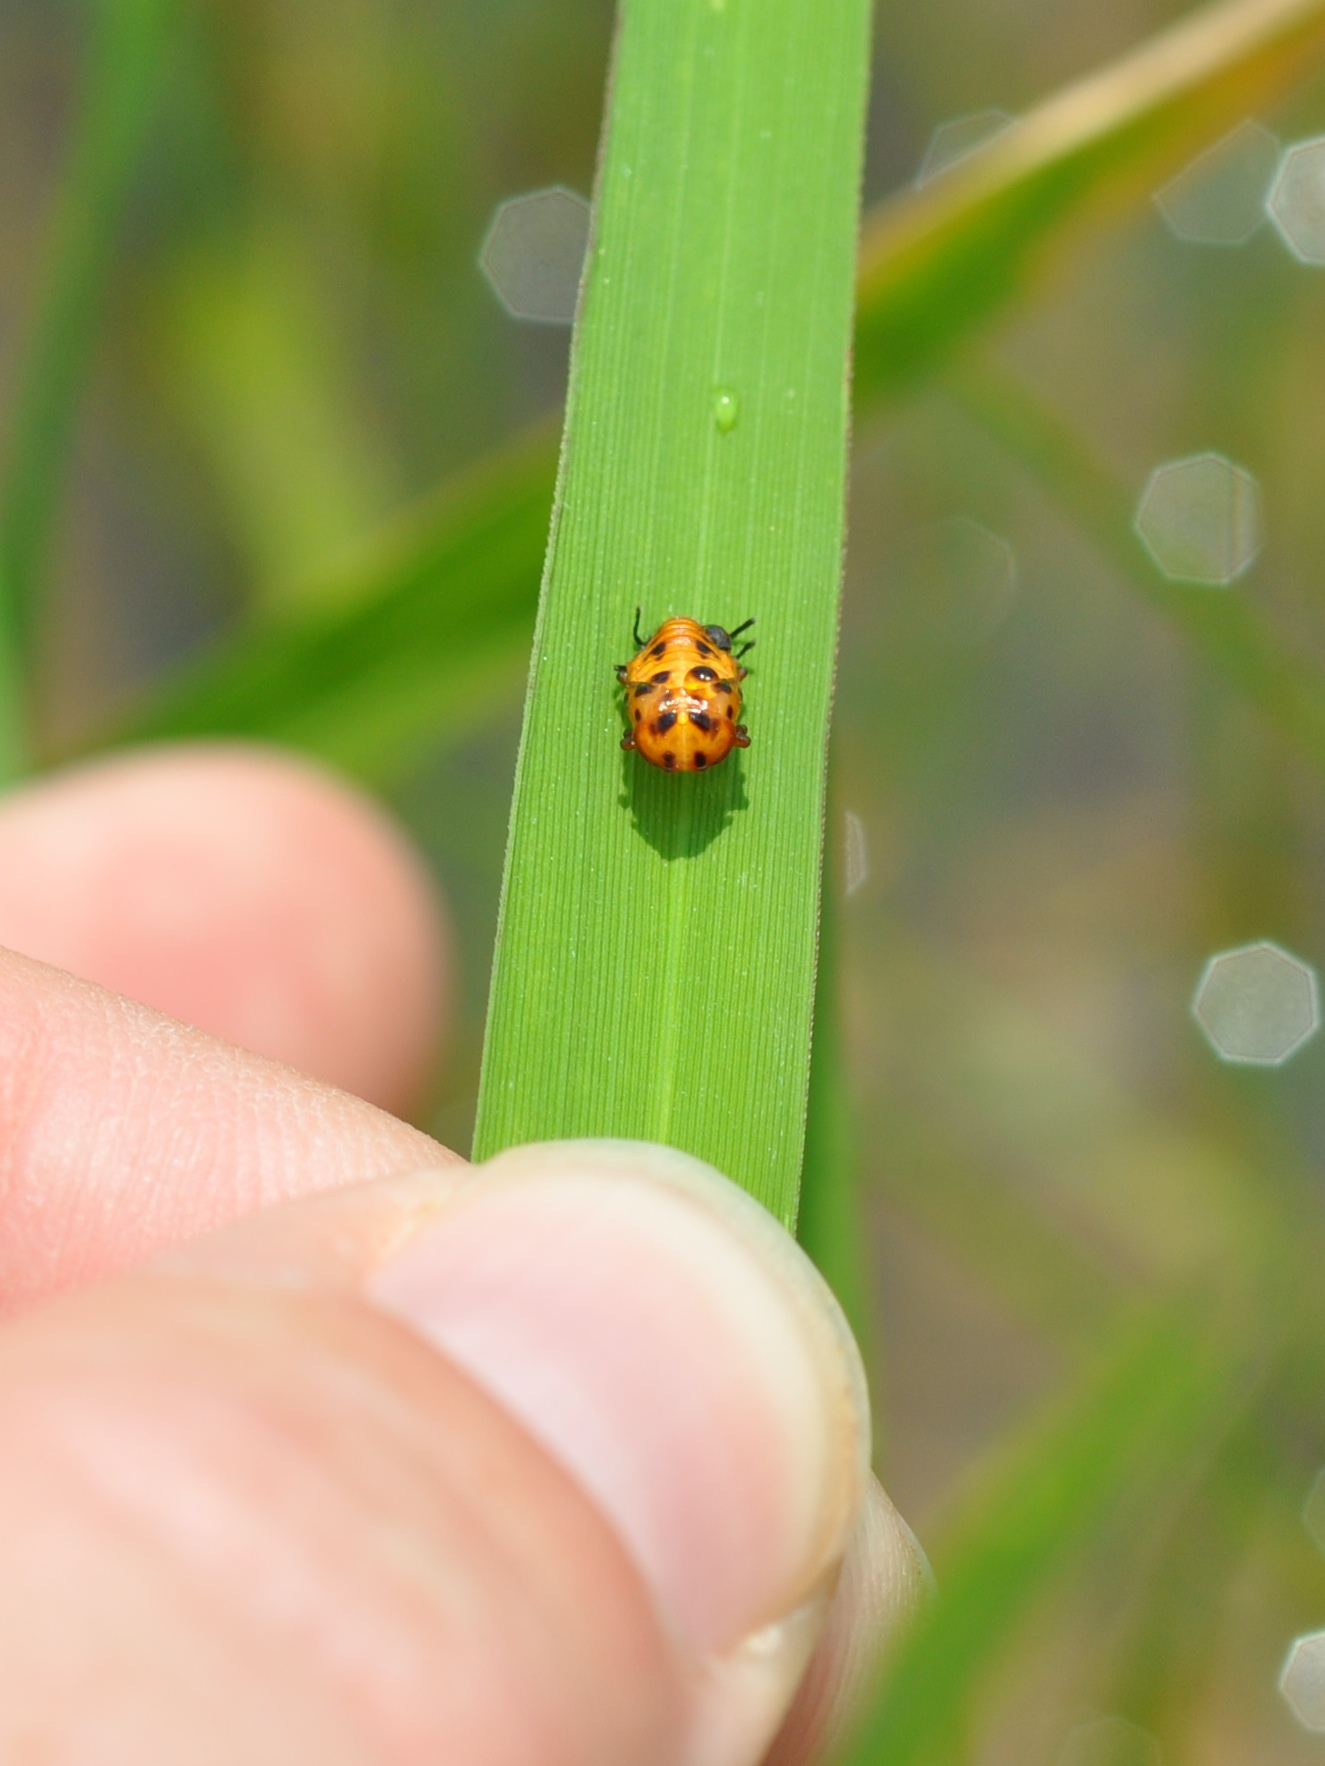 Although the pupal stage of lady bug is immobile, the adults and larvae are effective predators of a